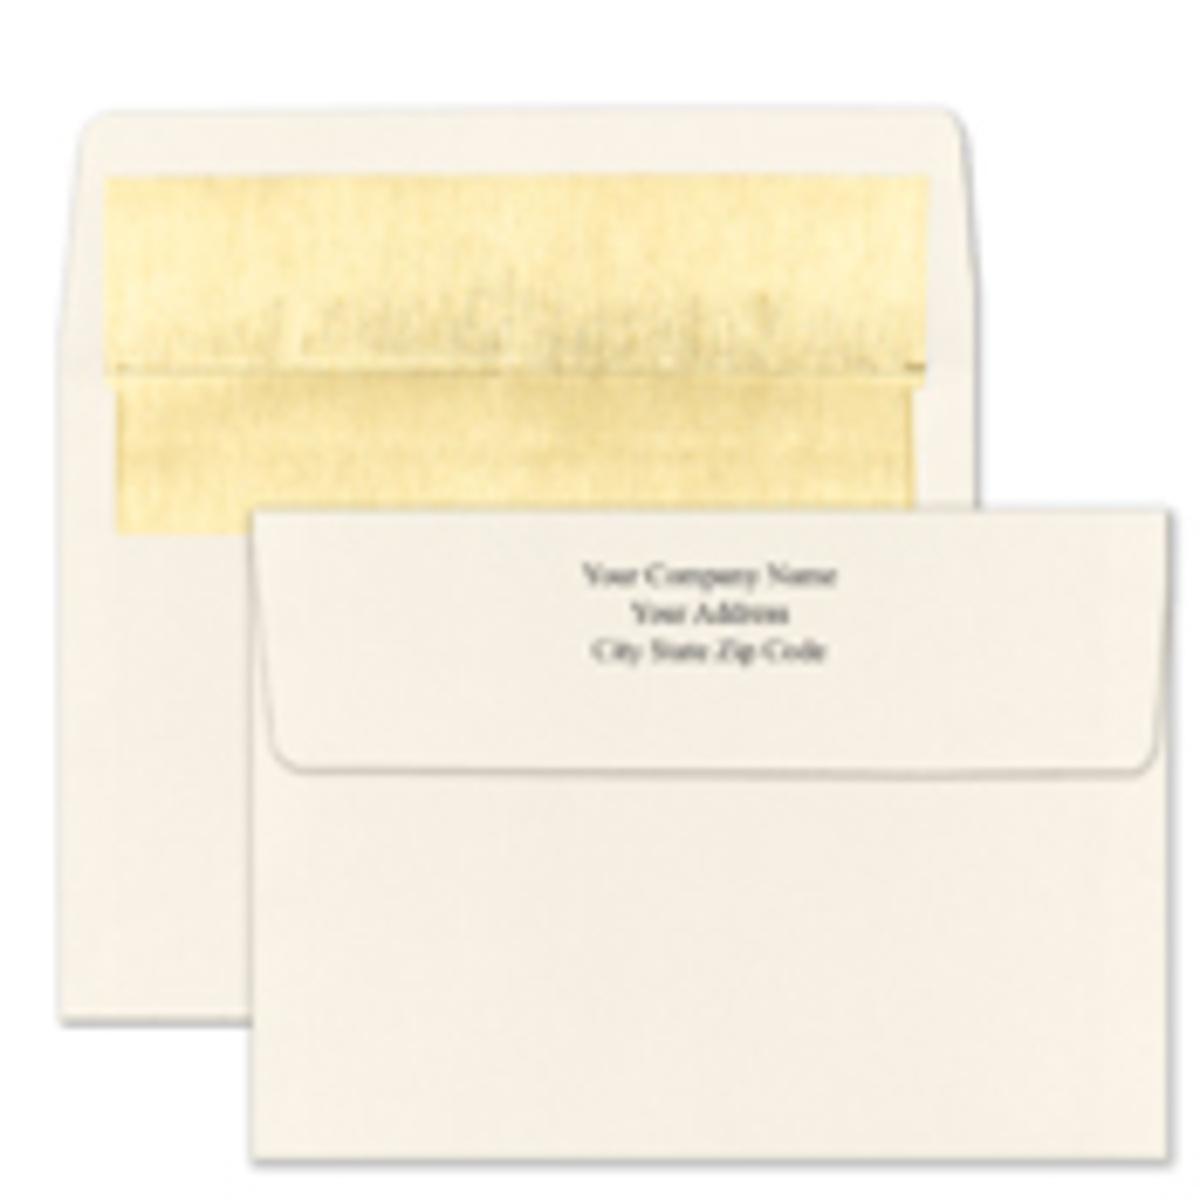 Recycled Shiny Gold Foil Lined Ecru Envelope - Printed